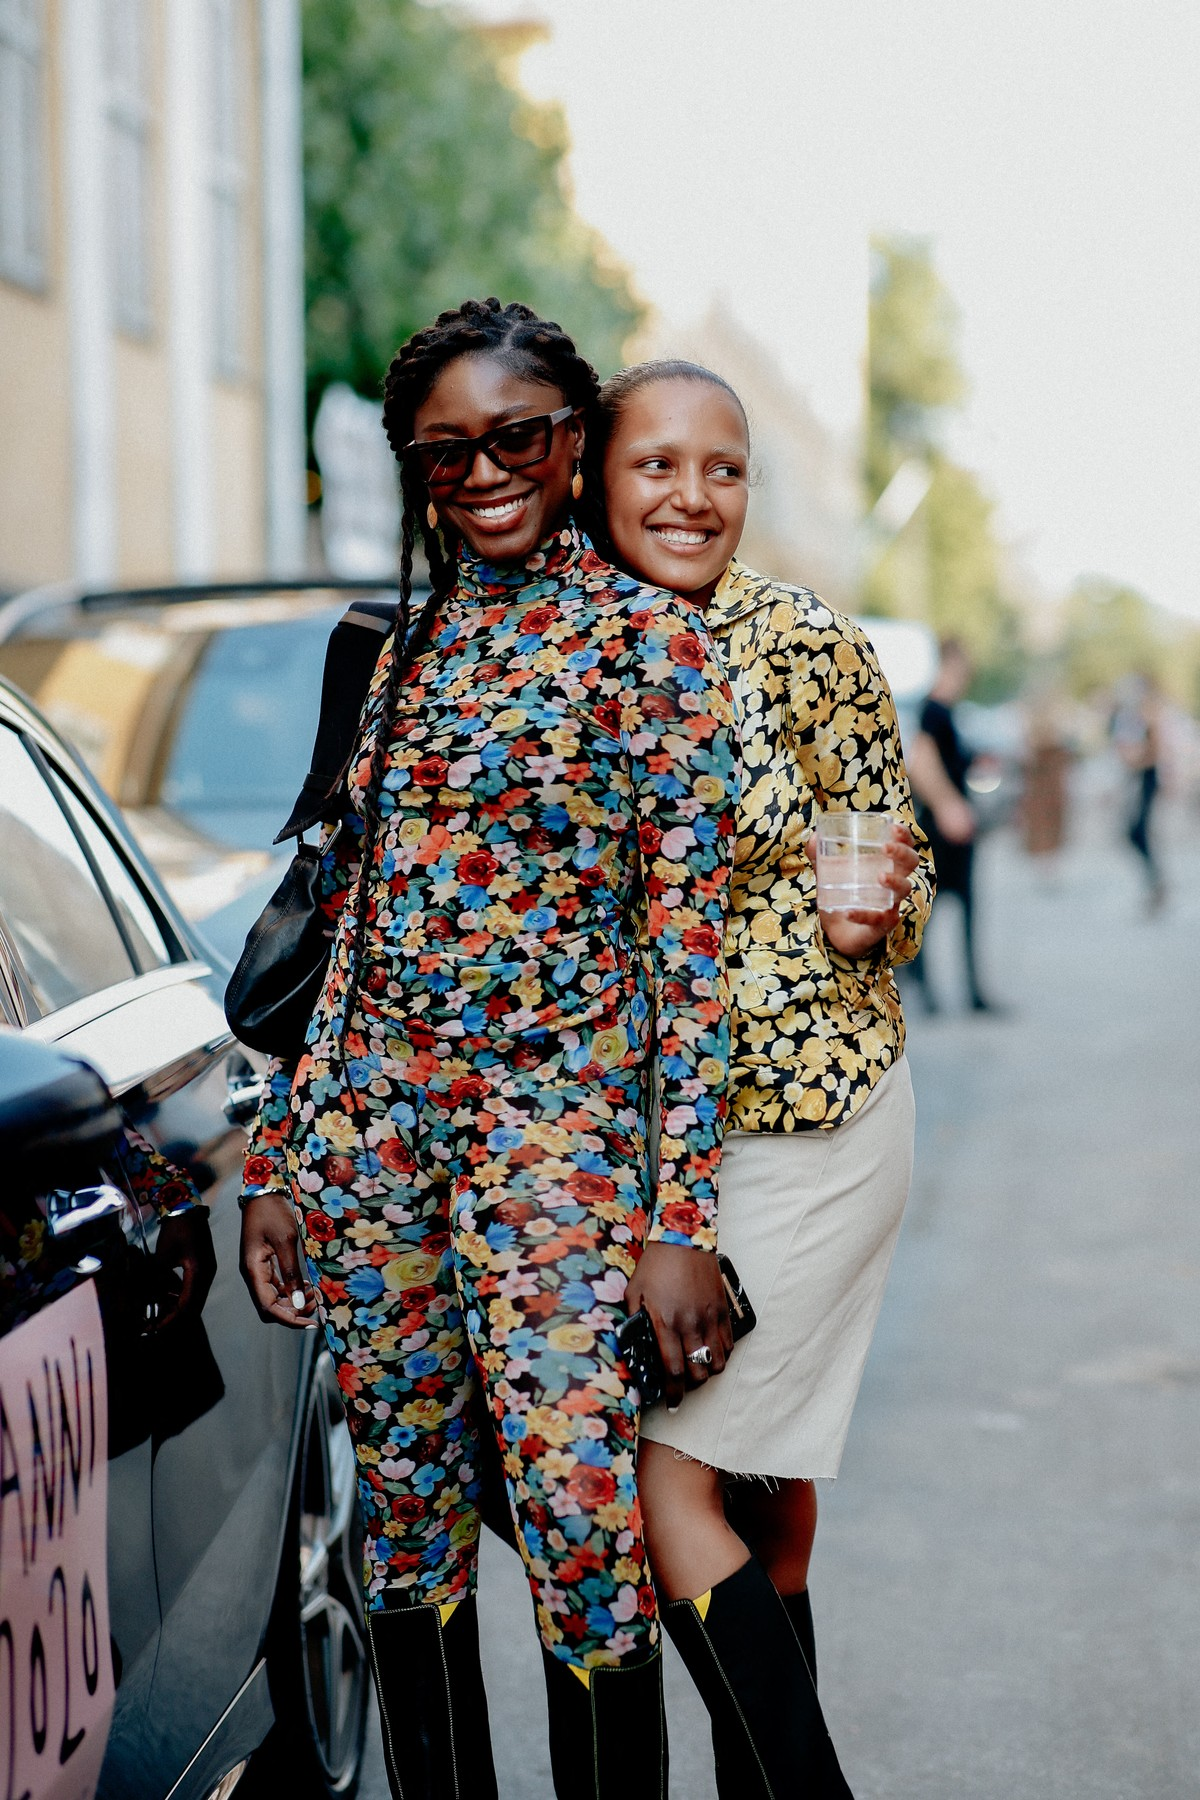 Street style, Flame and Chili Dia arriving at Ganni Spring Summer 2021 show, held at Badsmandsstraede, Copenhagen, Denmark, on August 10th, 2020.,Image: 551765375, License: Rights-managed, Restrictions: , Model Release: no, Credit line: Bertrand-Hillion Marie-Paola/ABACA / Abaca Press / Profimedia